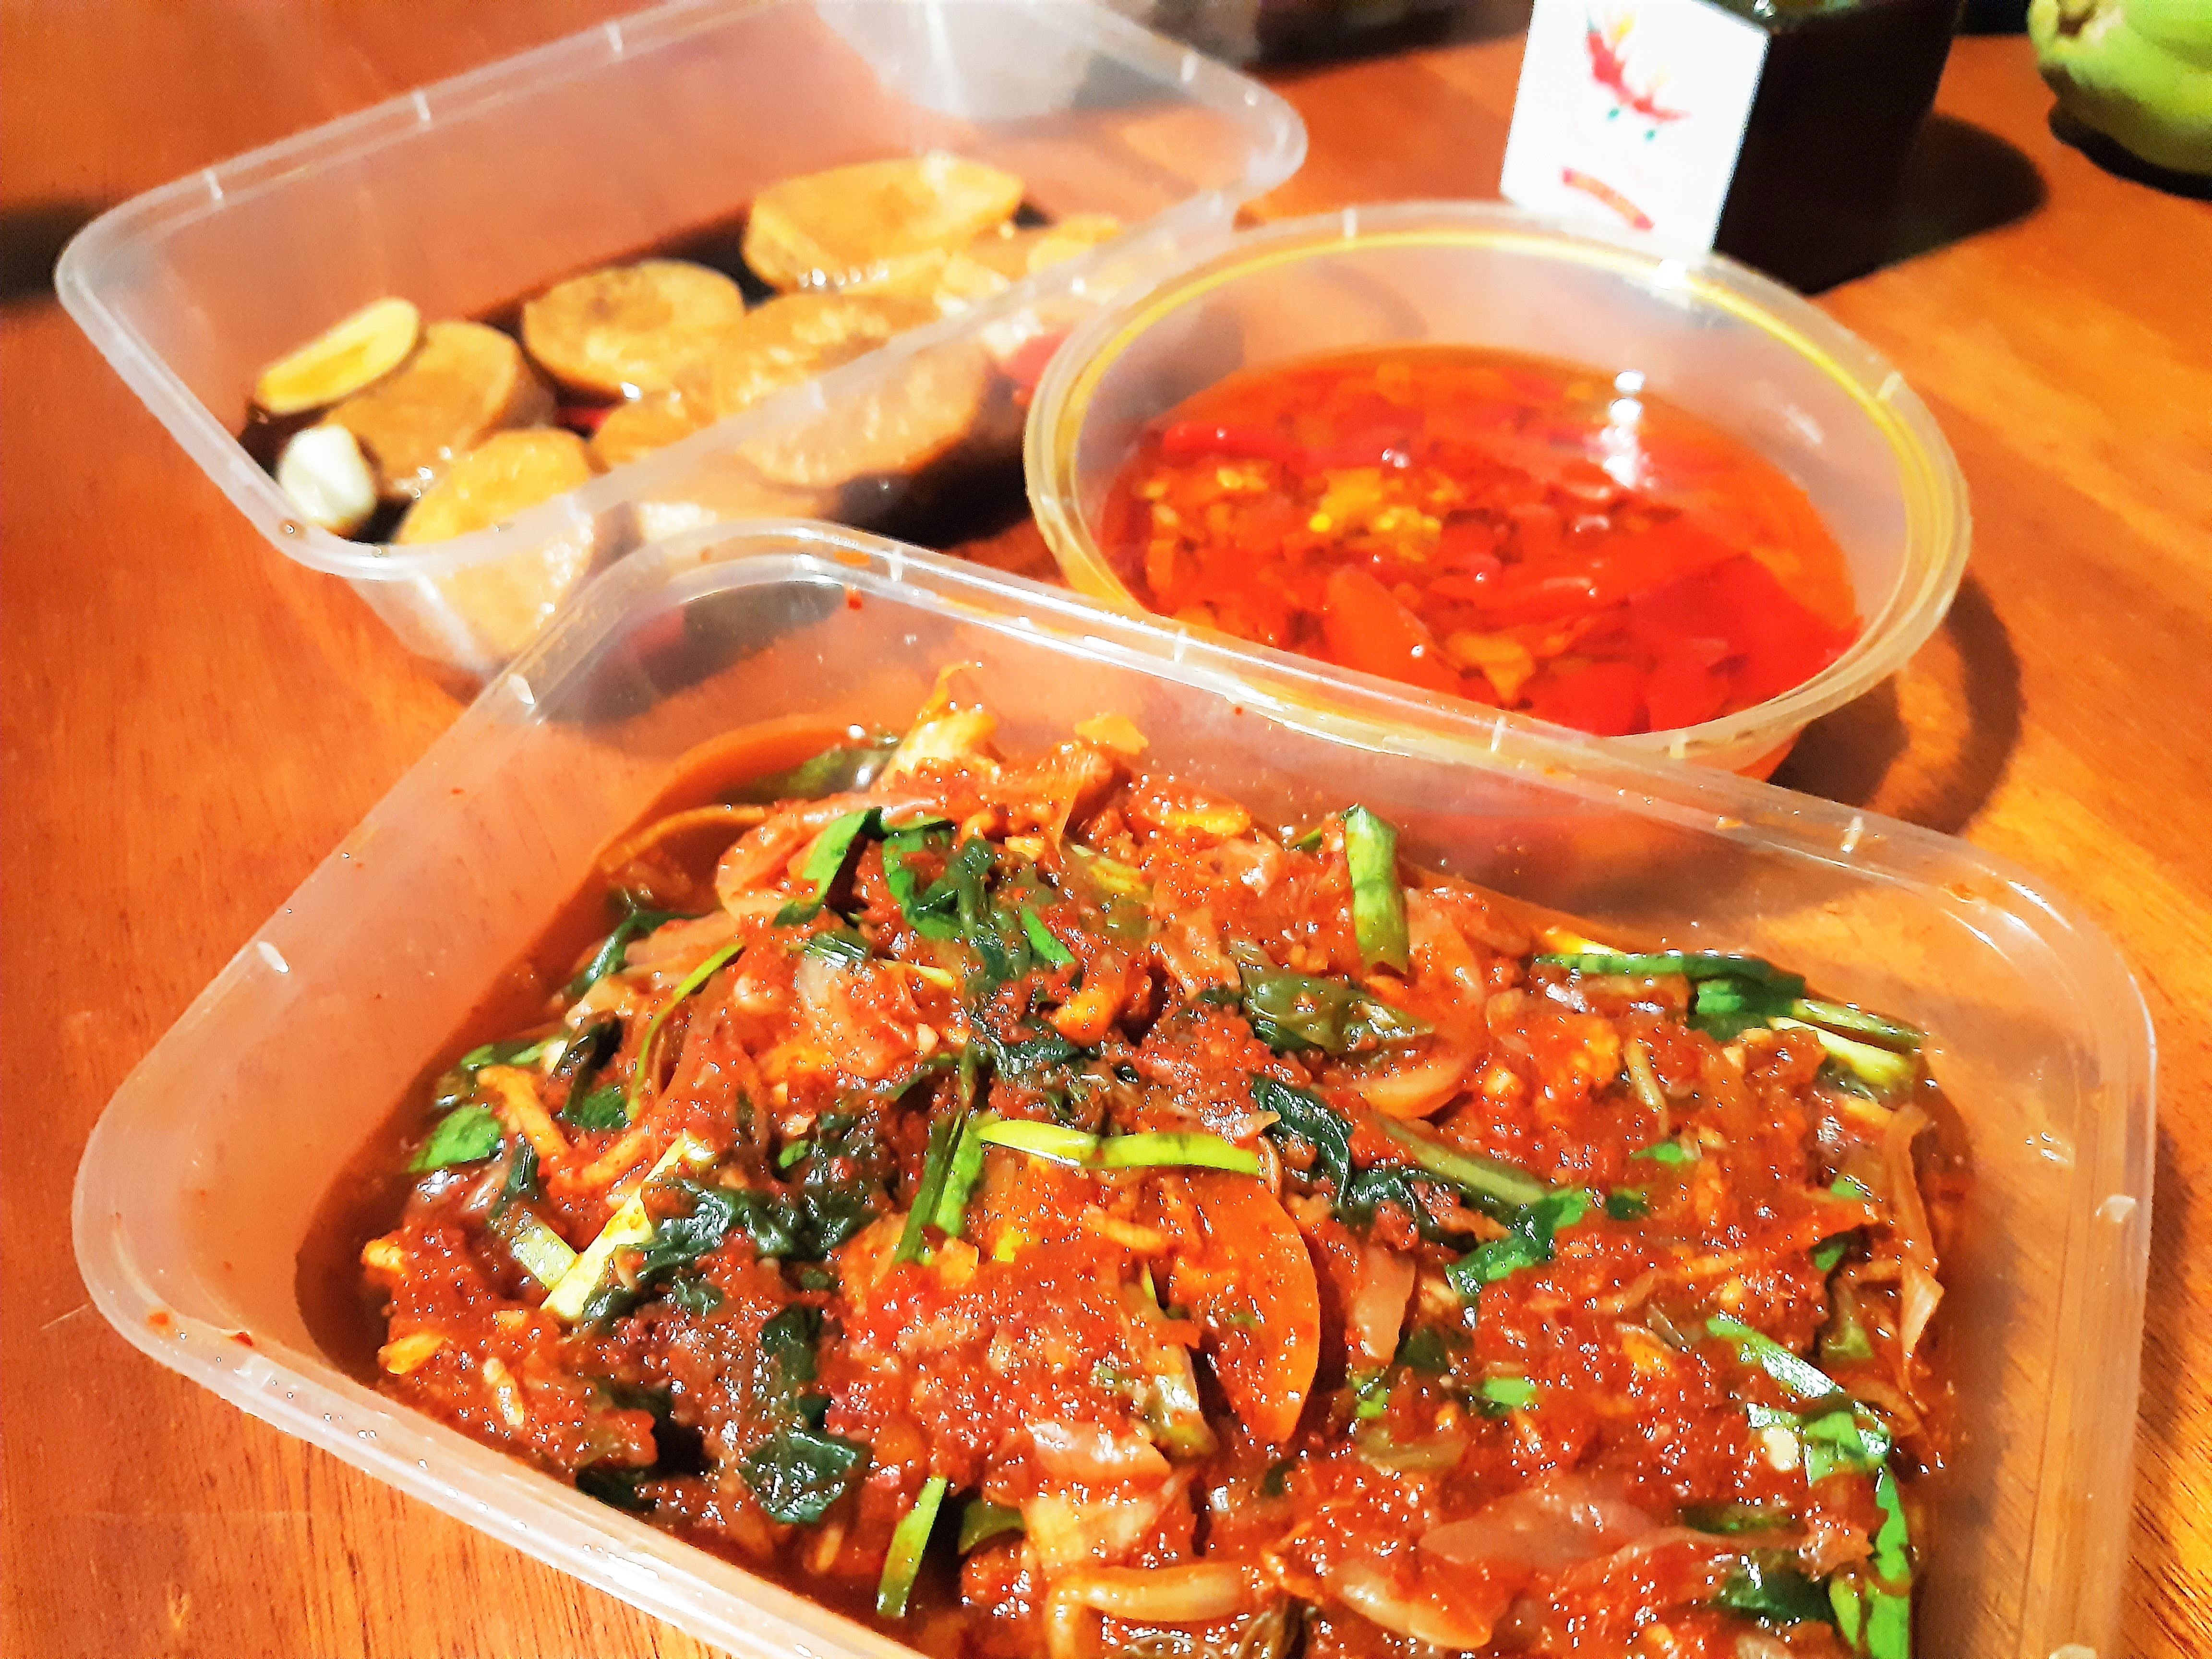 Ous Treat kimchi pickled daikon chiles marinading in oil